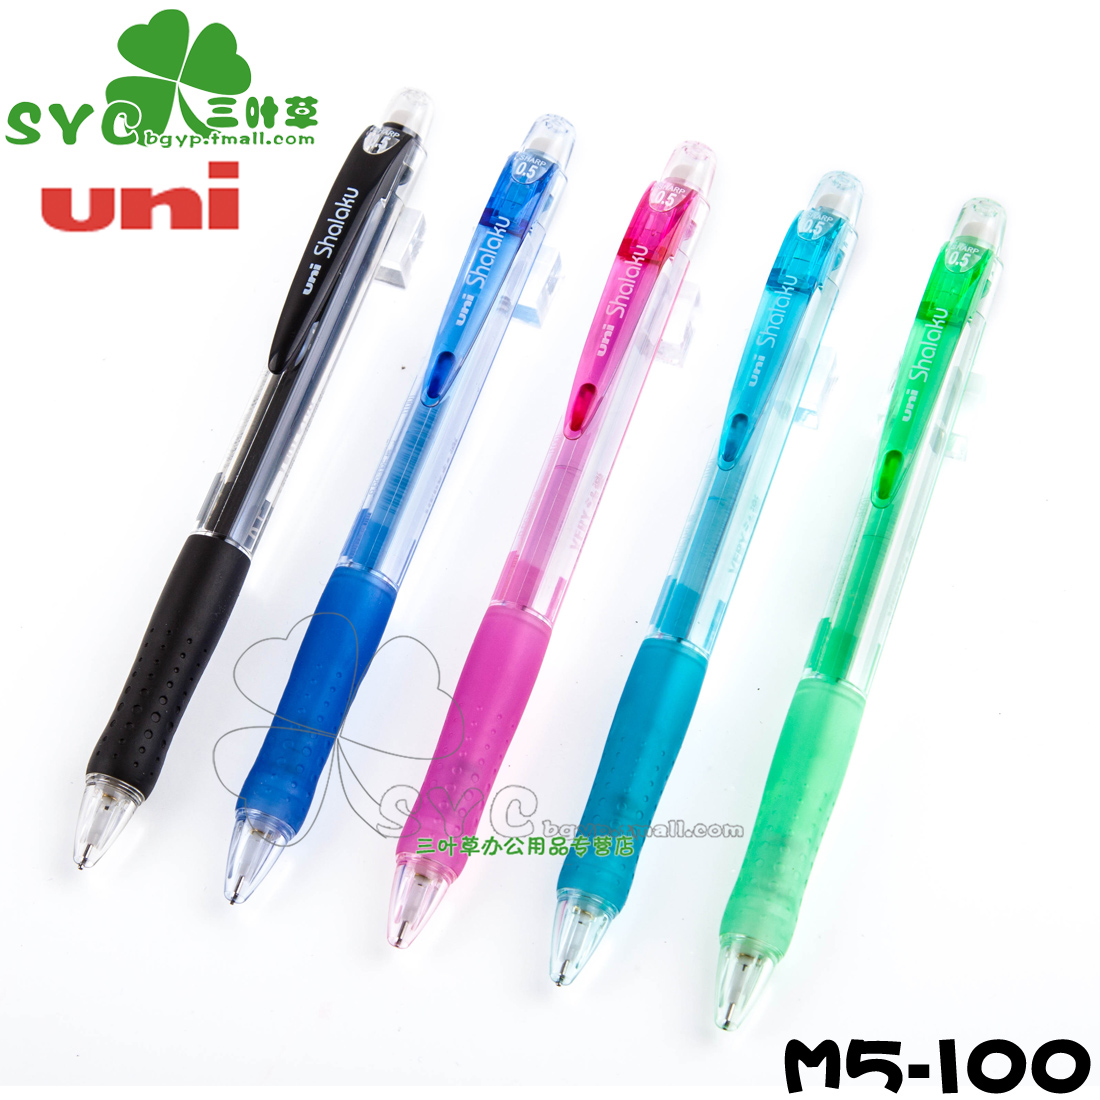 Genuine mitsubishi mitsubishi m5-100 mechanical pencil 0.5 mechanical pencil mitsubishi mitsubishi pencil